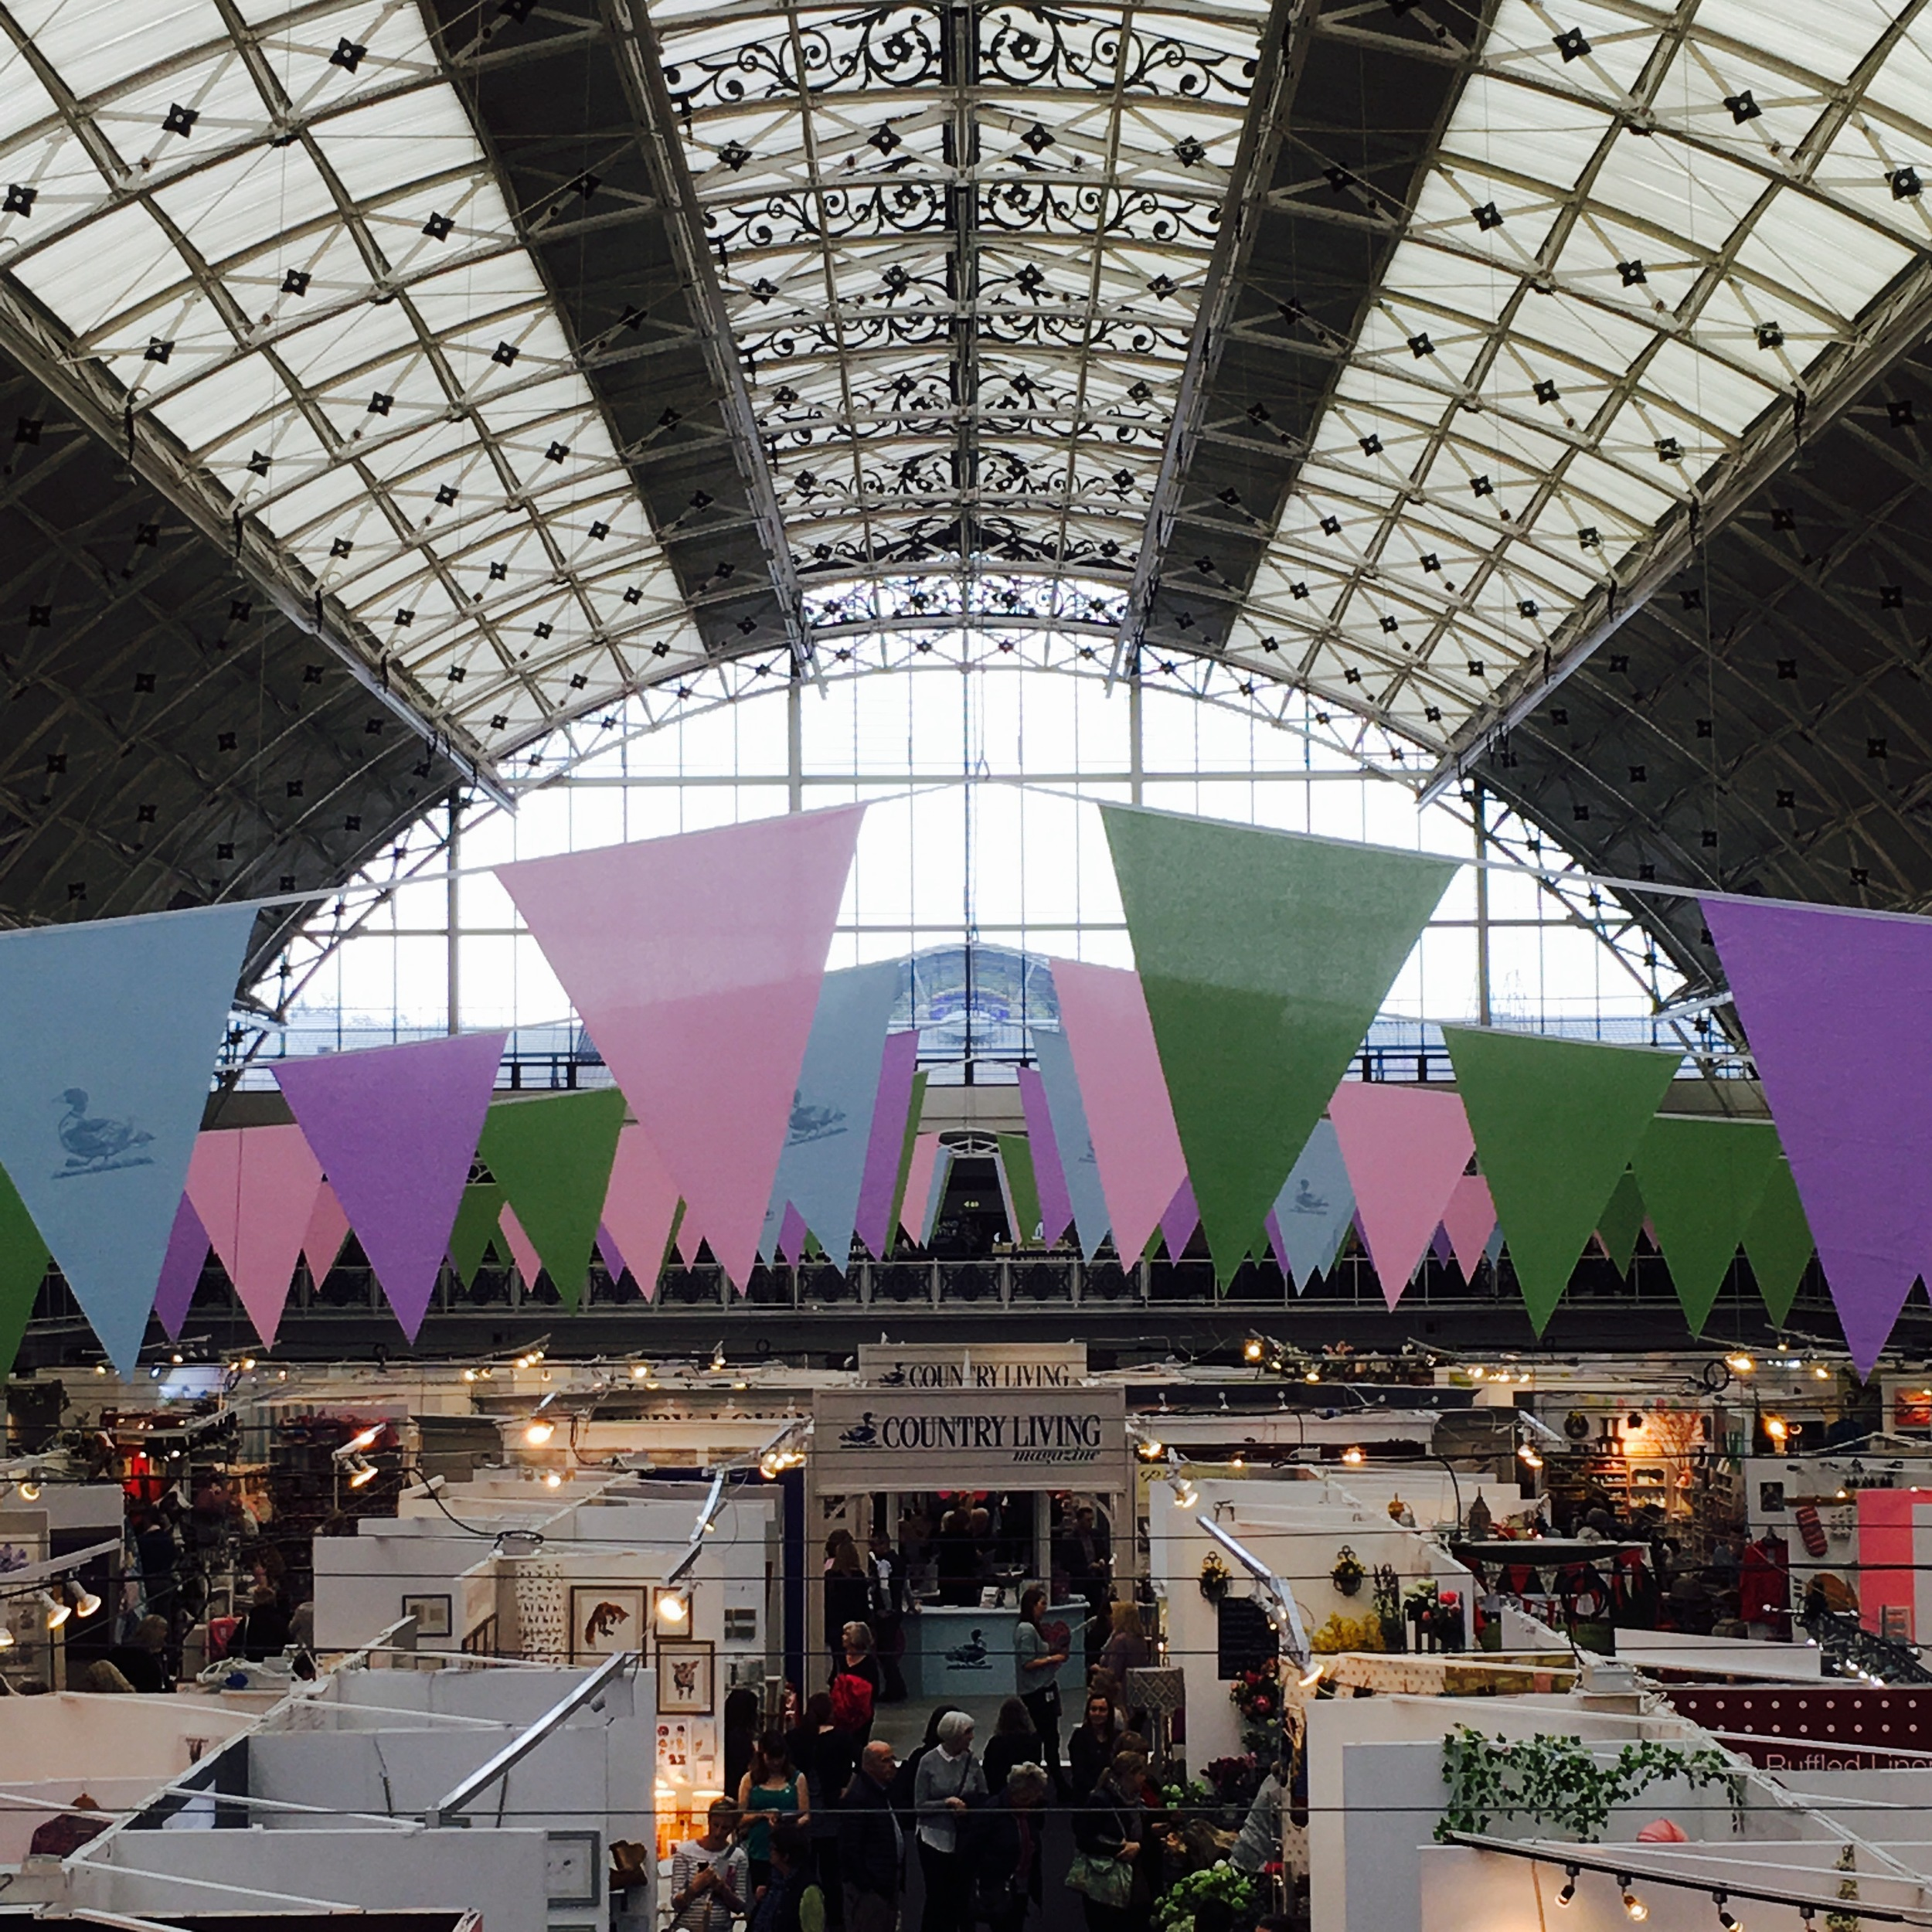 The Country Living Spring Fair takes place at the grand Business Design Centre is Islington, North London.